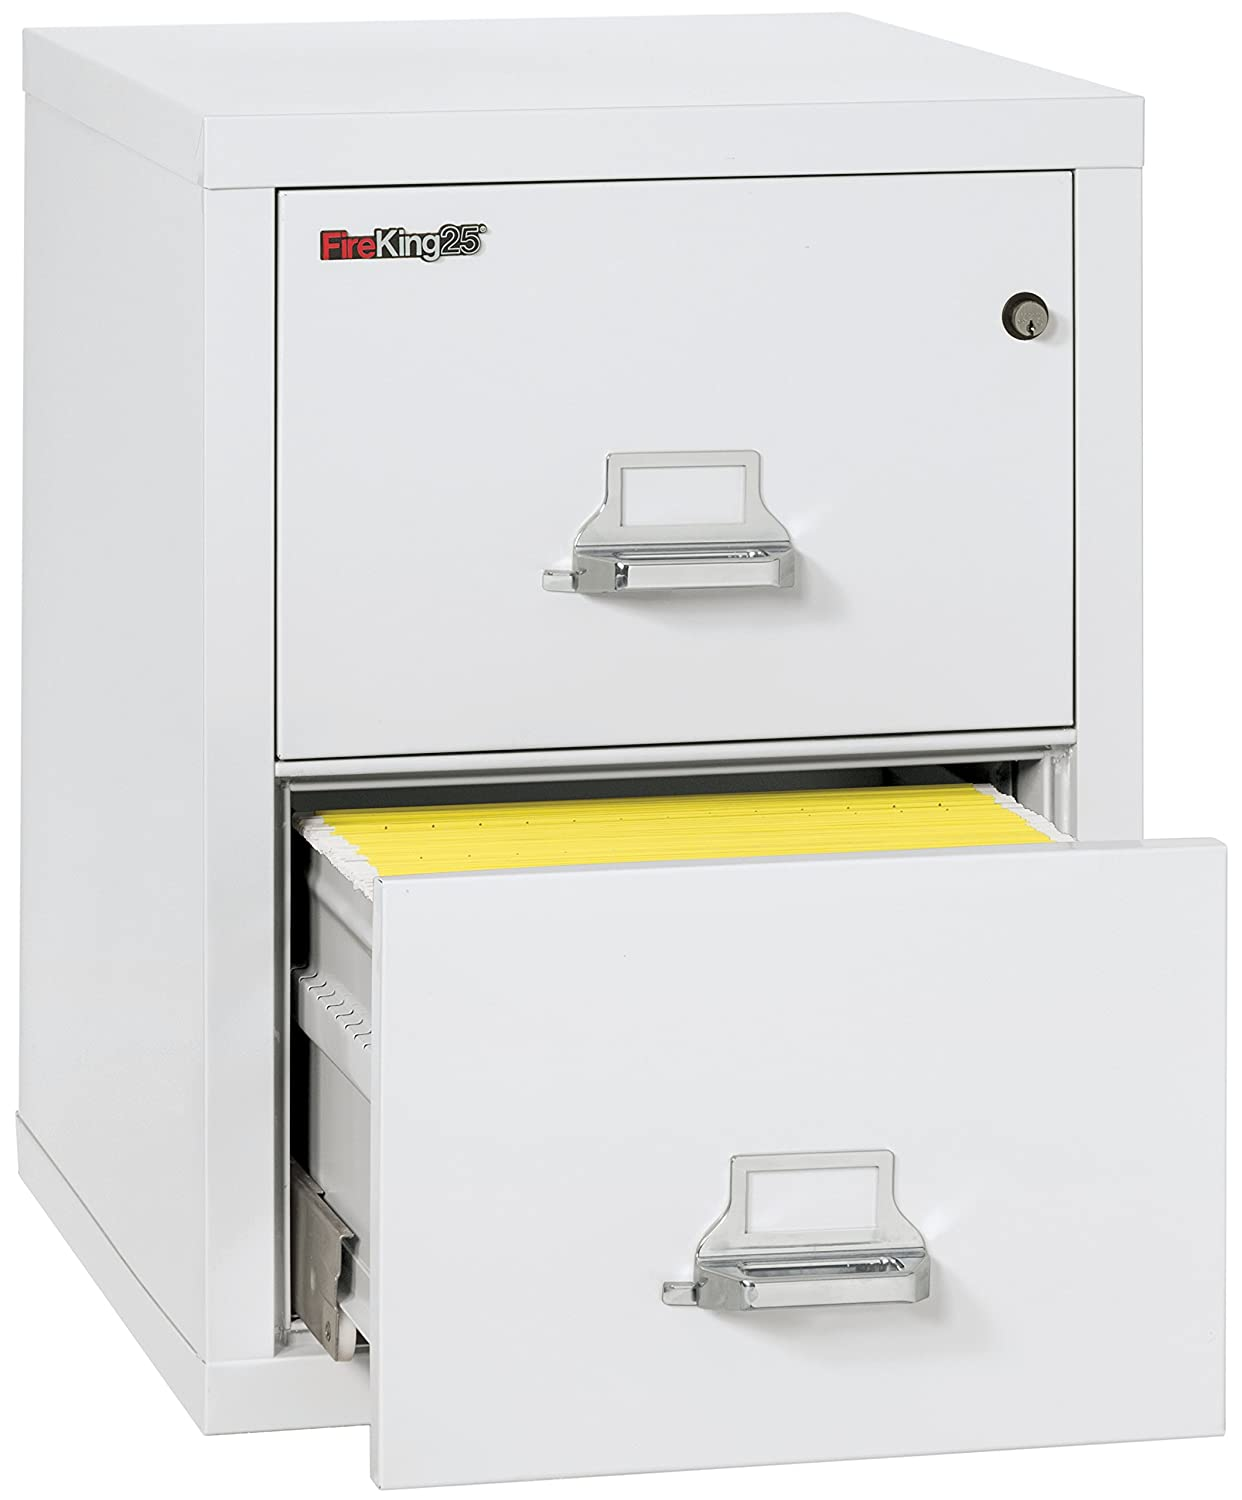 4 Legal Sized Drawers Fireproof Vertical File Cabinet 52.25in H x 20.81in W x 25.06in D Made in The USA